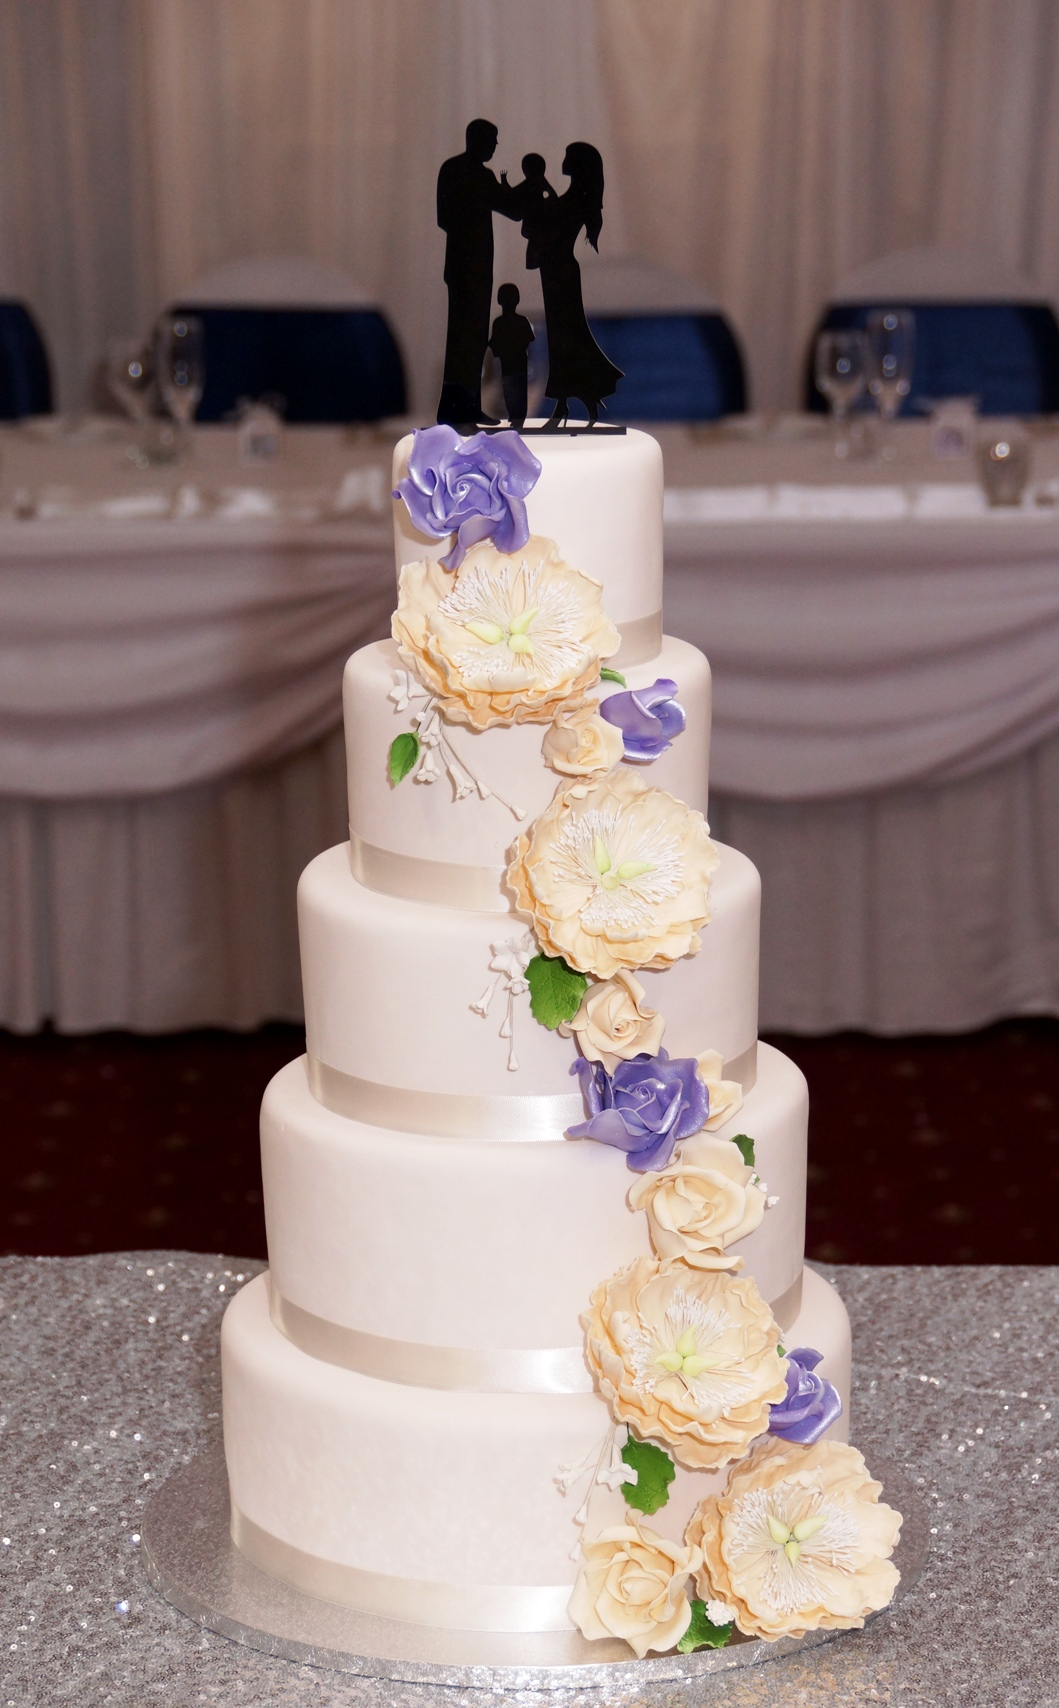 5 Tier Ivory Fondant with Ivory & Mauve